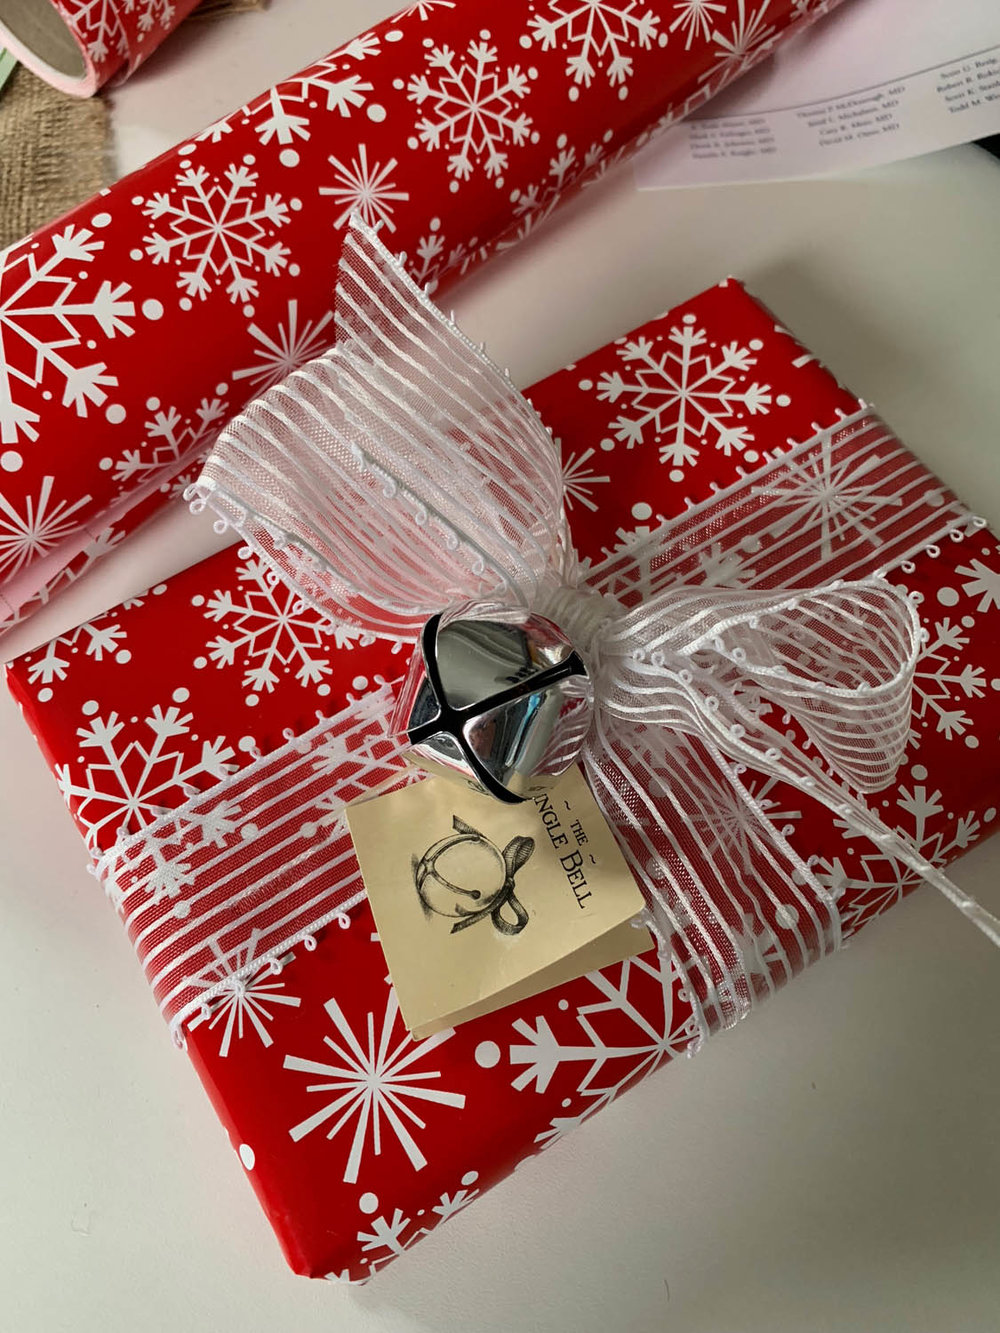 gift wrapped in read and white snowflake paper with white ribbon and jingle bell embellishment